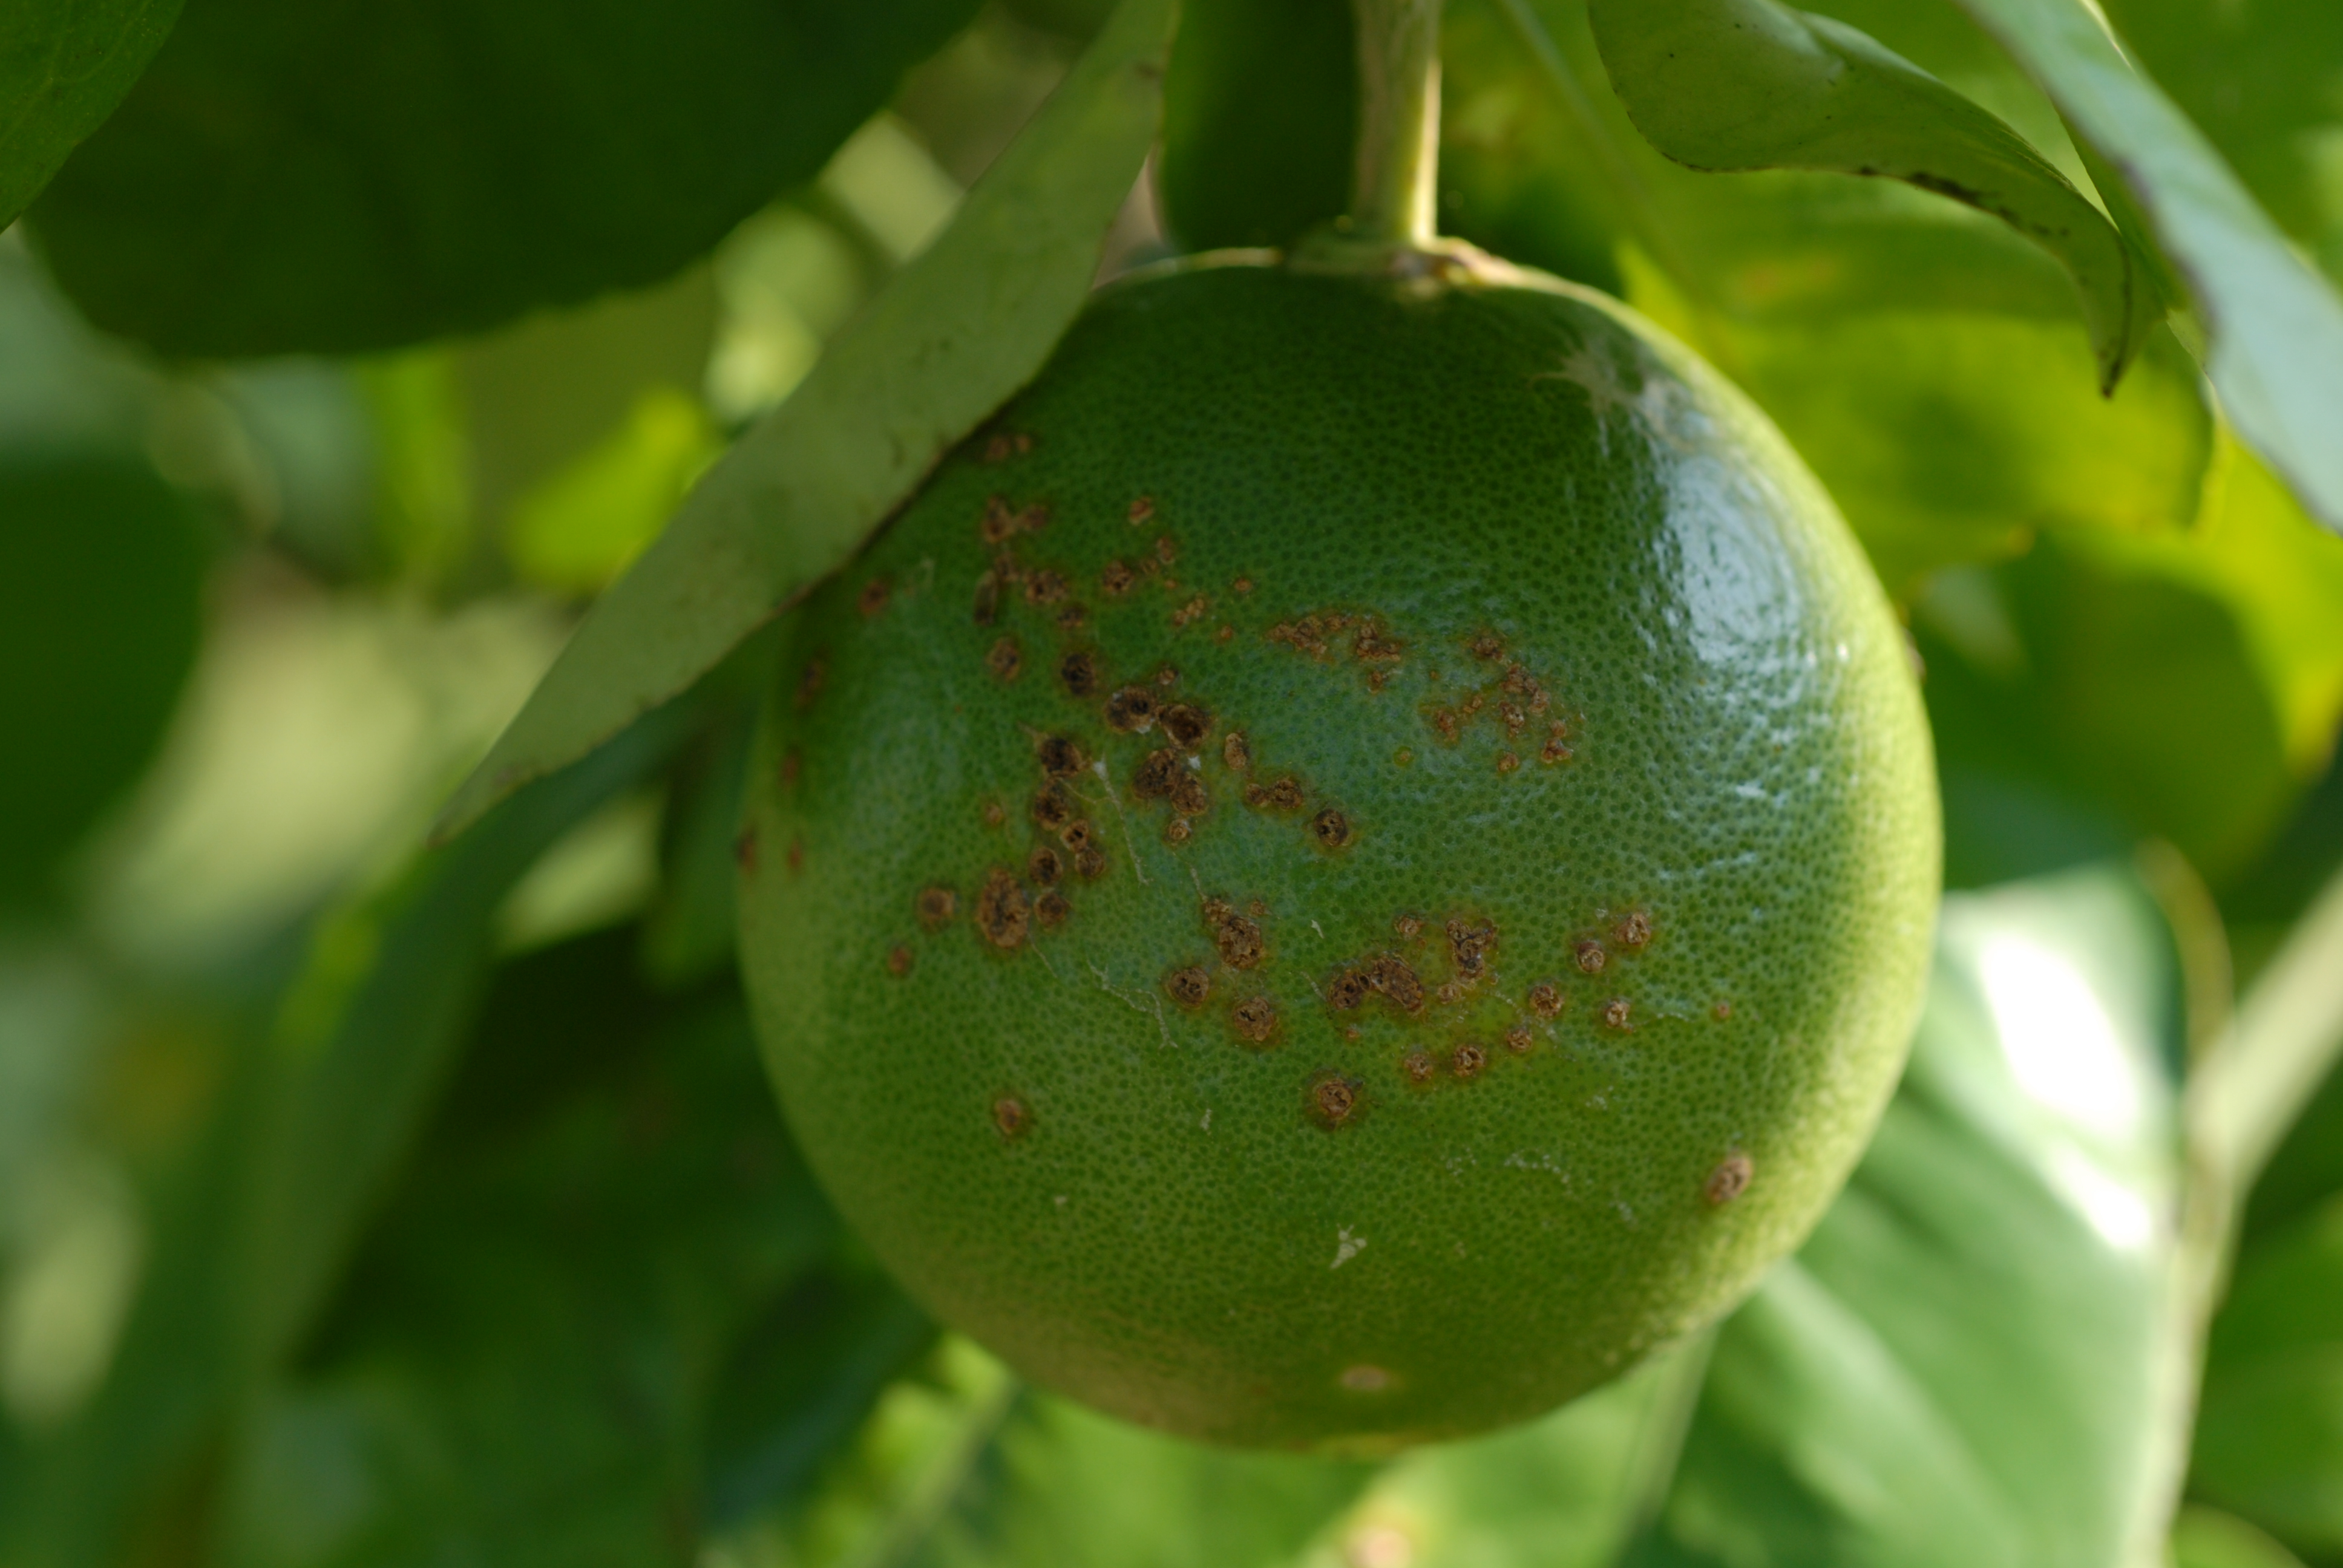 lesions on fruit